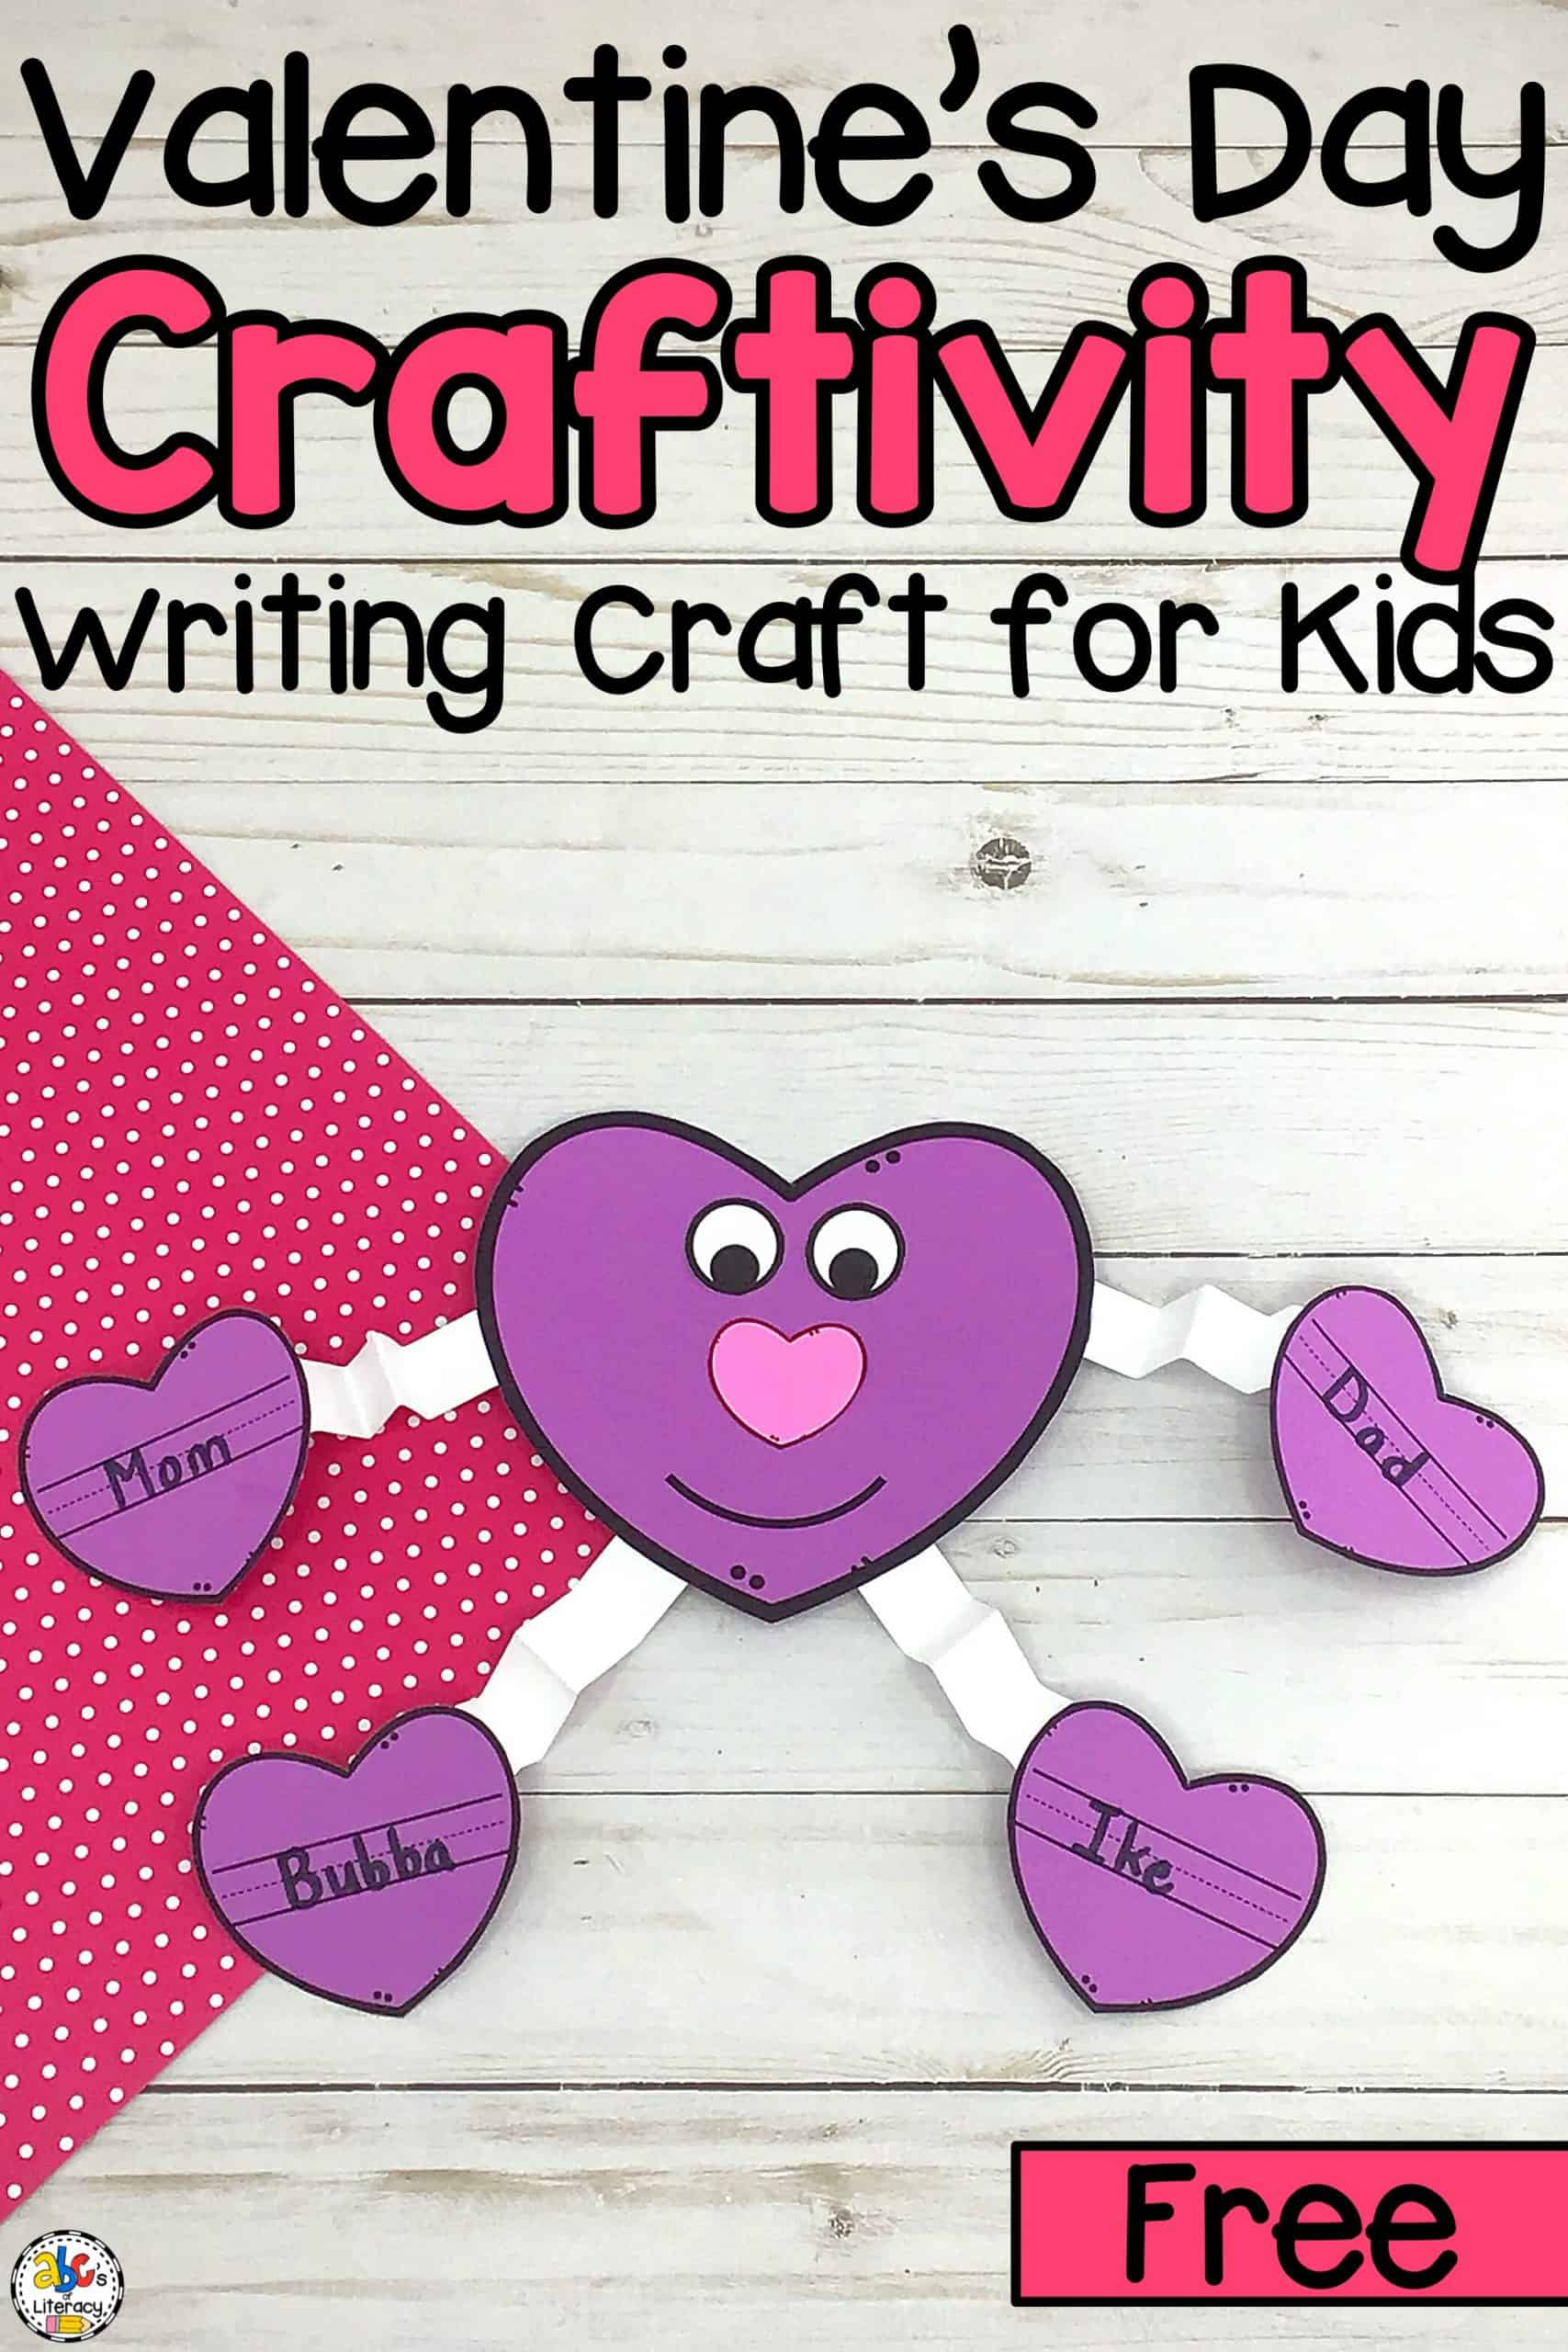 Valentine's Day Heart Craft and Writing Activity: Printable Templates Included